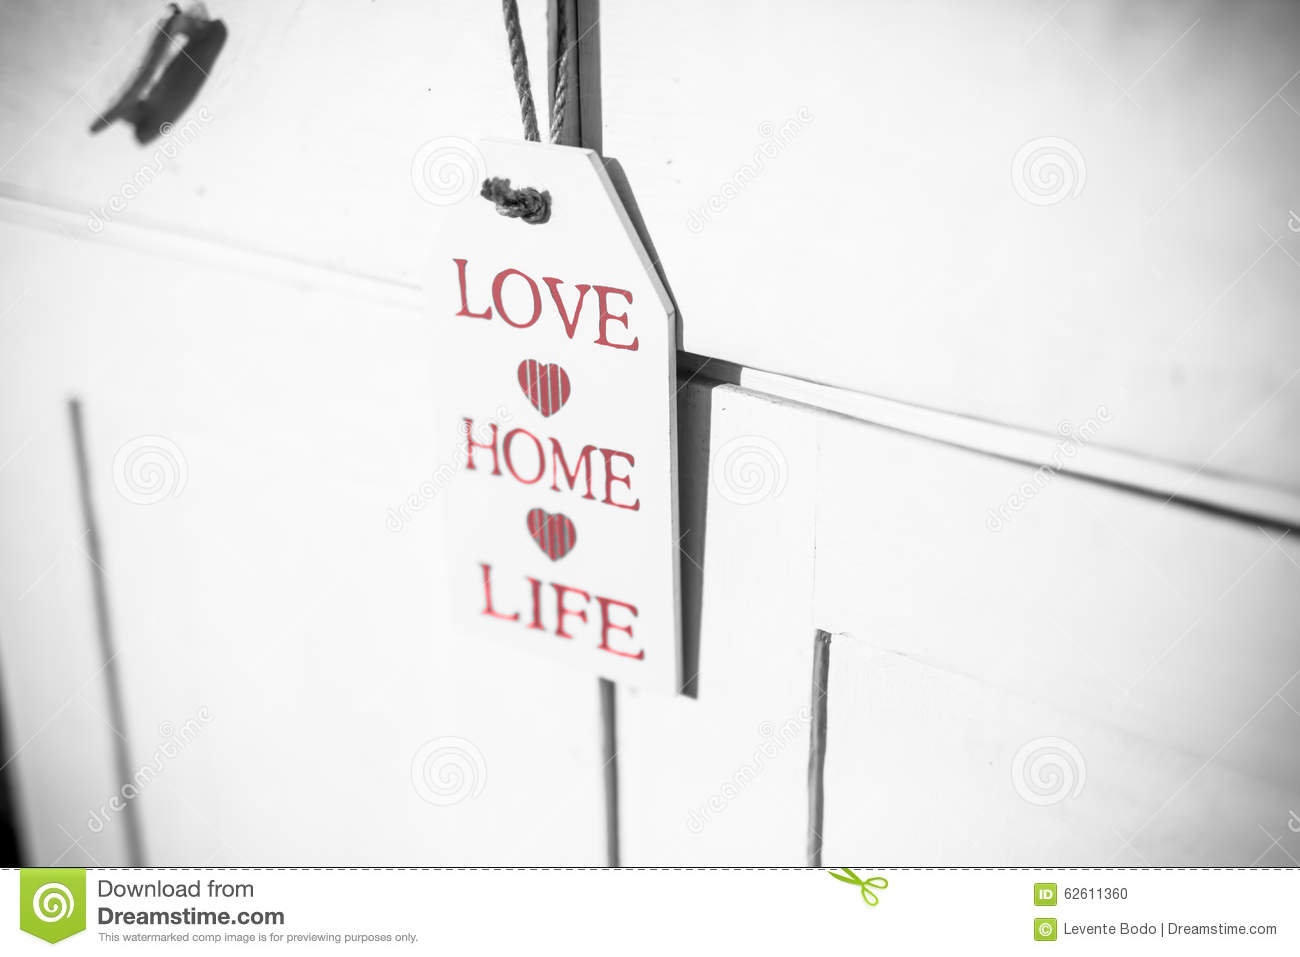 Love home life sign decoration